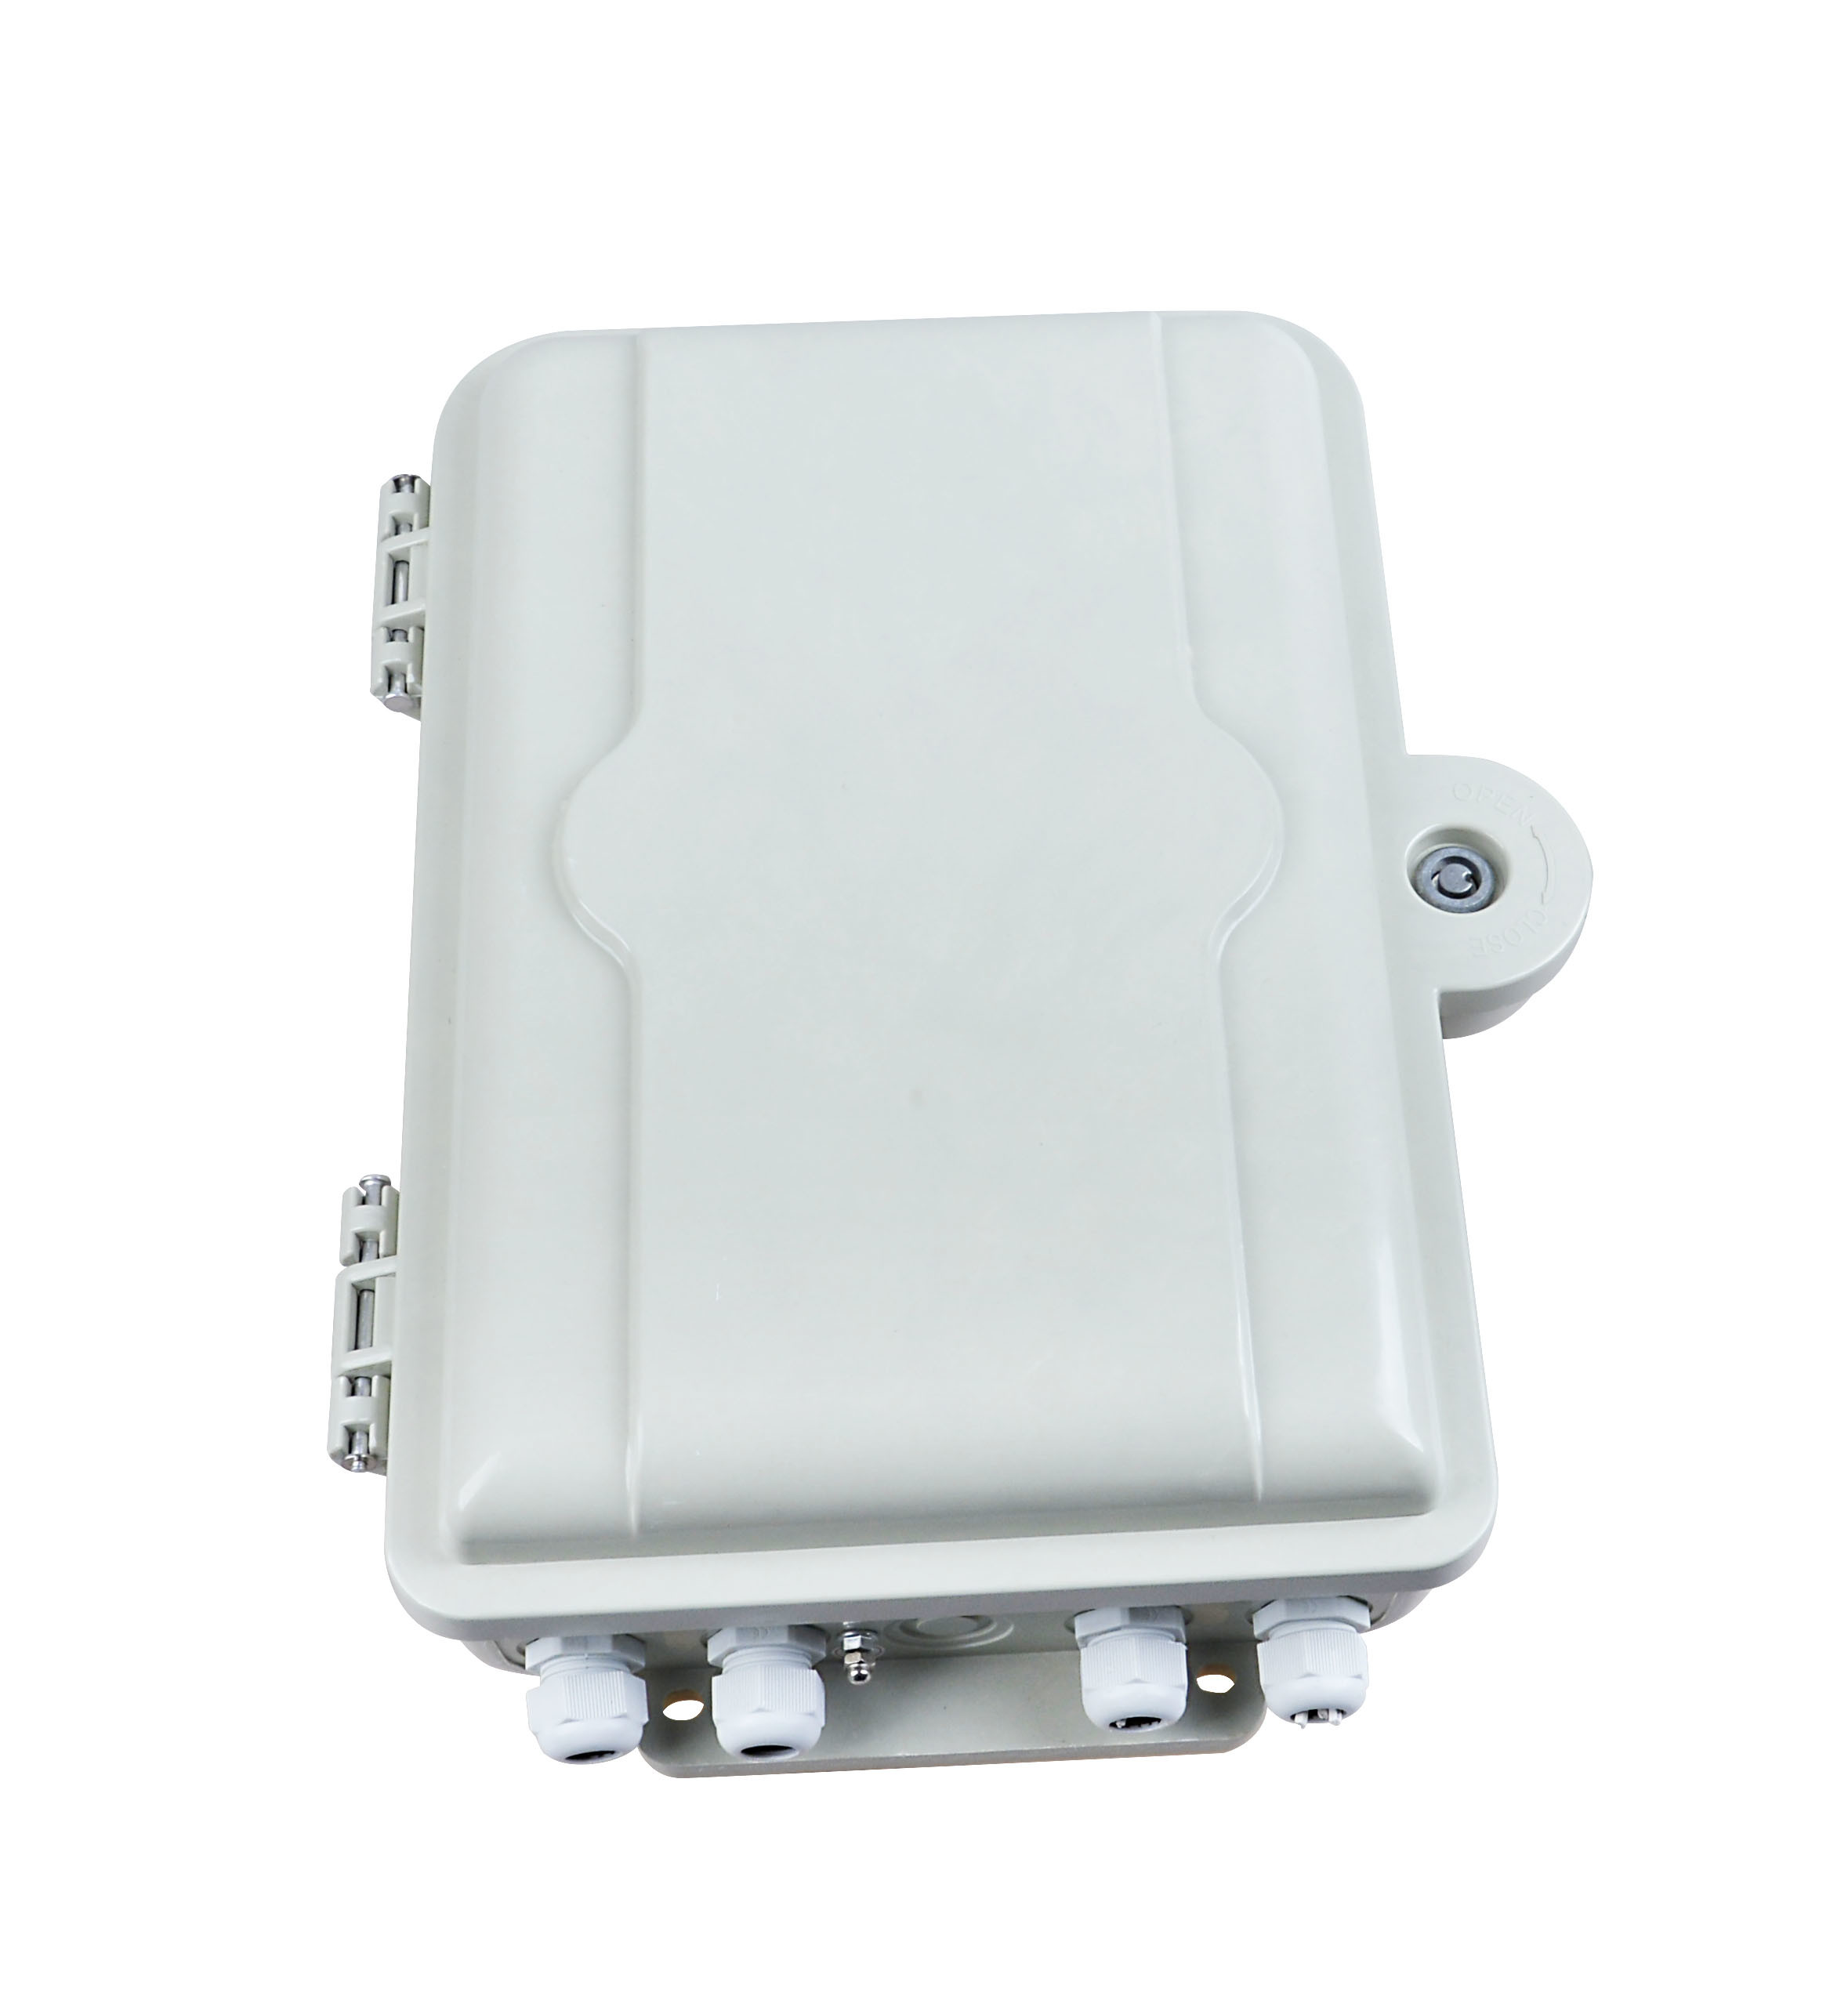 1X16 SMC Optical Cable Distribution Box FTTH Distribution Splitter Box